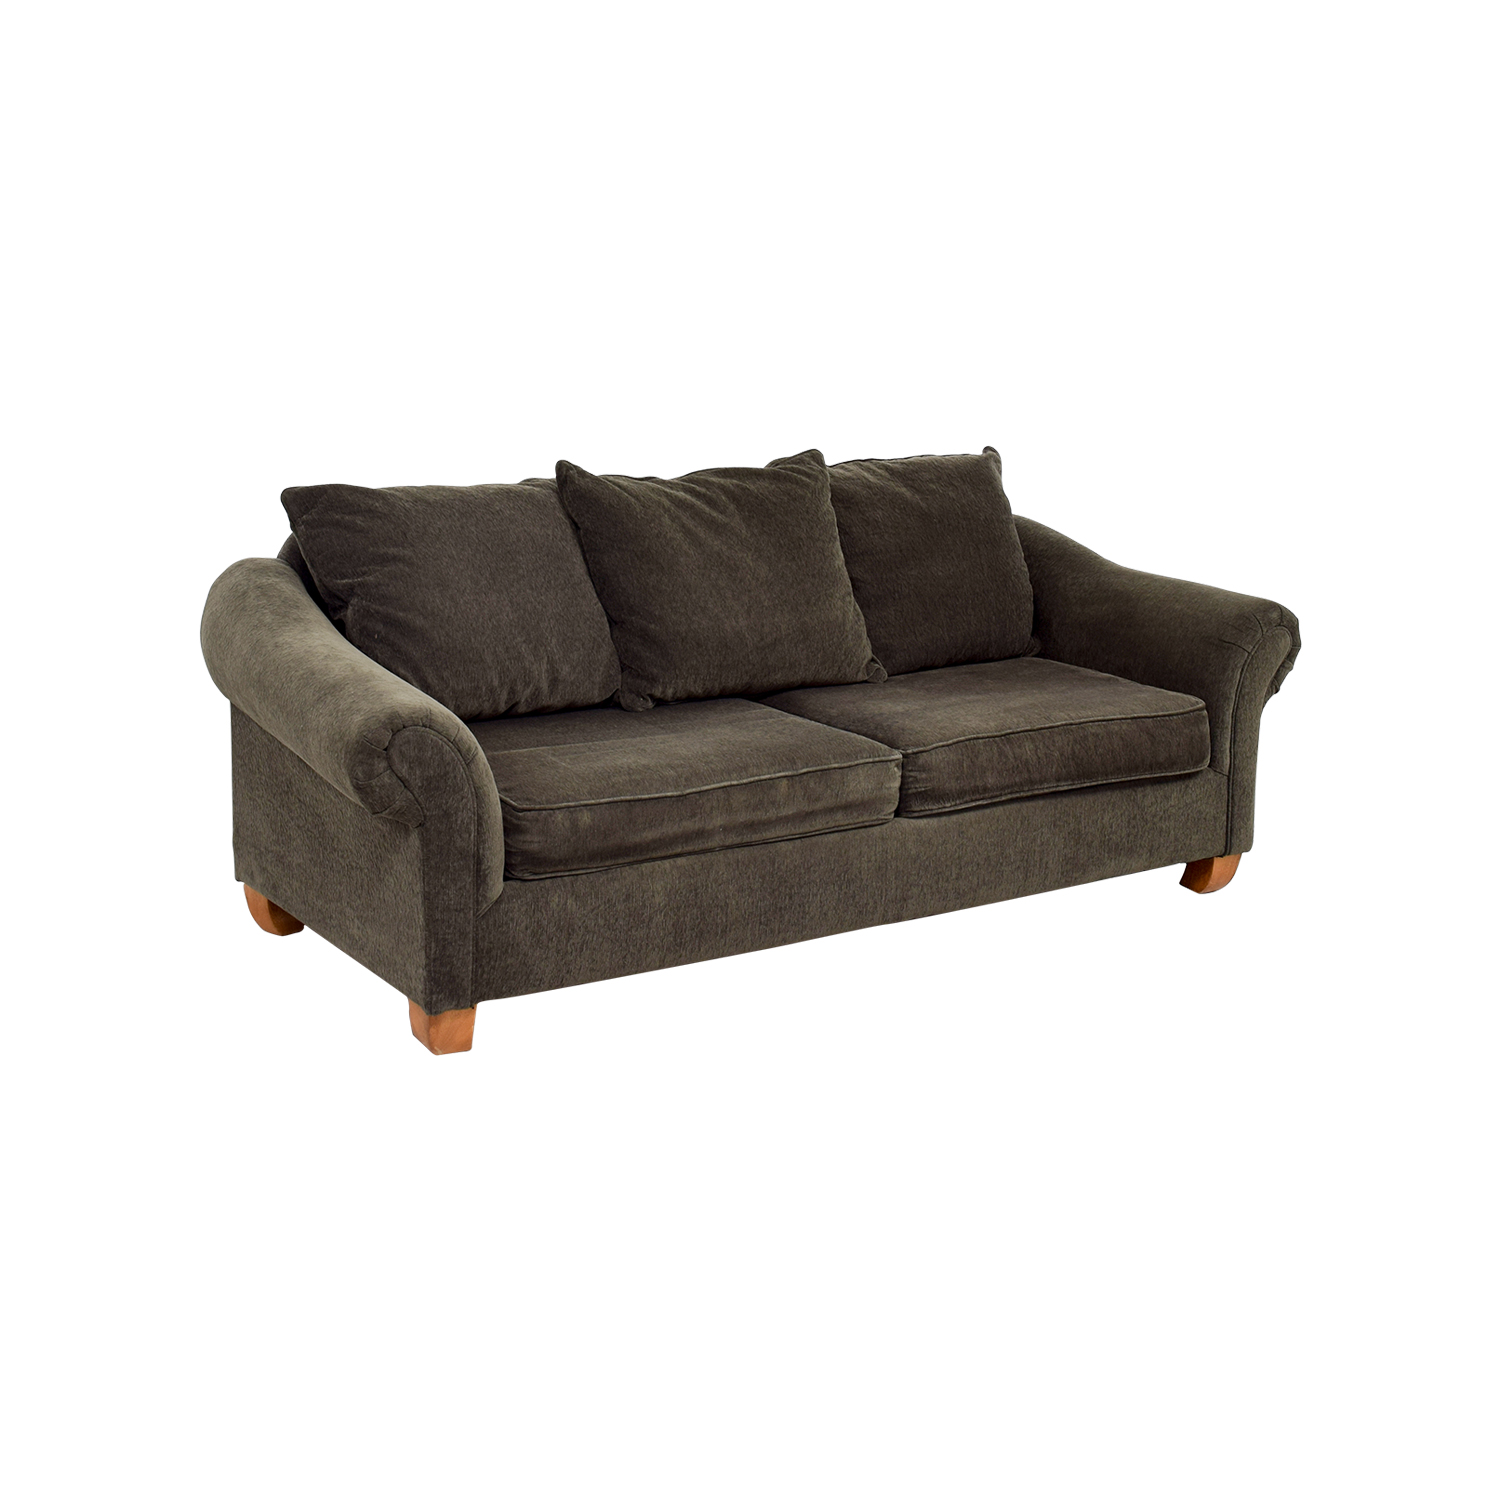 Star Furniture Houston Tx Star Furniture Sofas Living Room Cantor Leather Sofa By Sectional